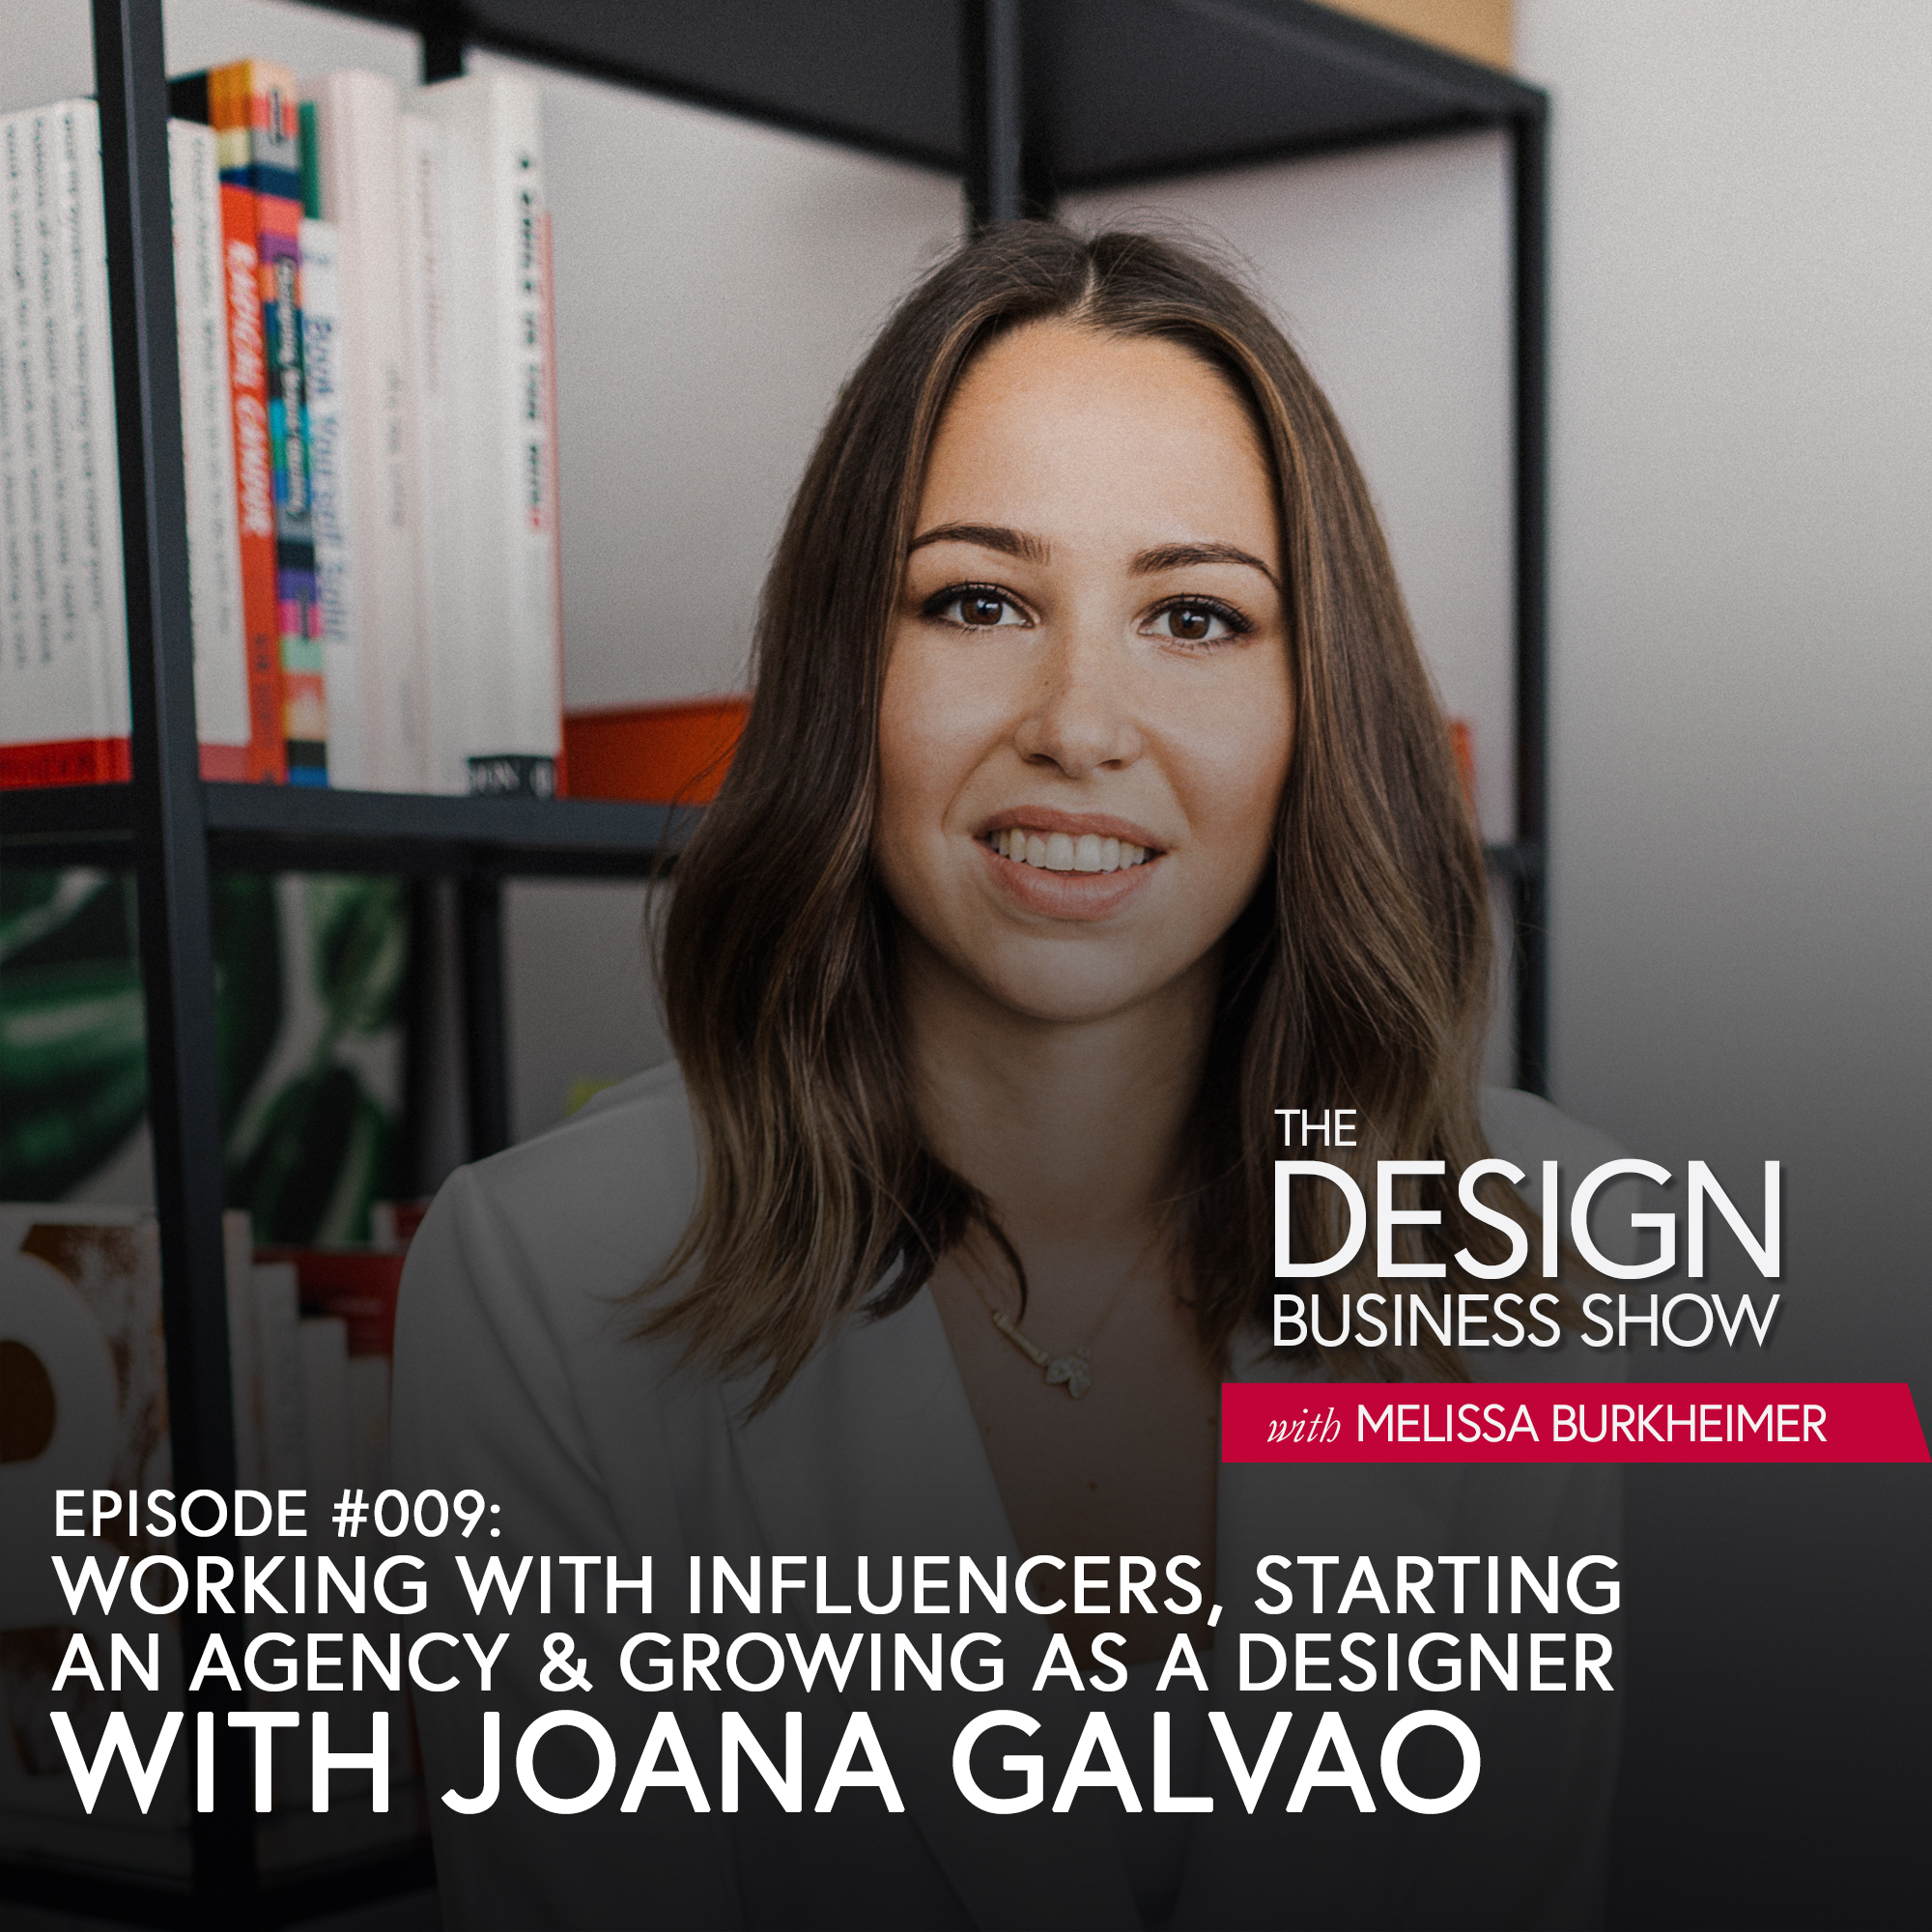 Learn how Joana went from freelancing to starting an award-winning design agency with a team of 10 designers and developers.